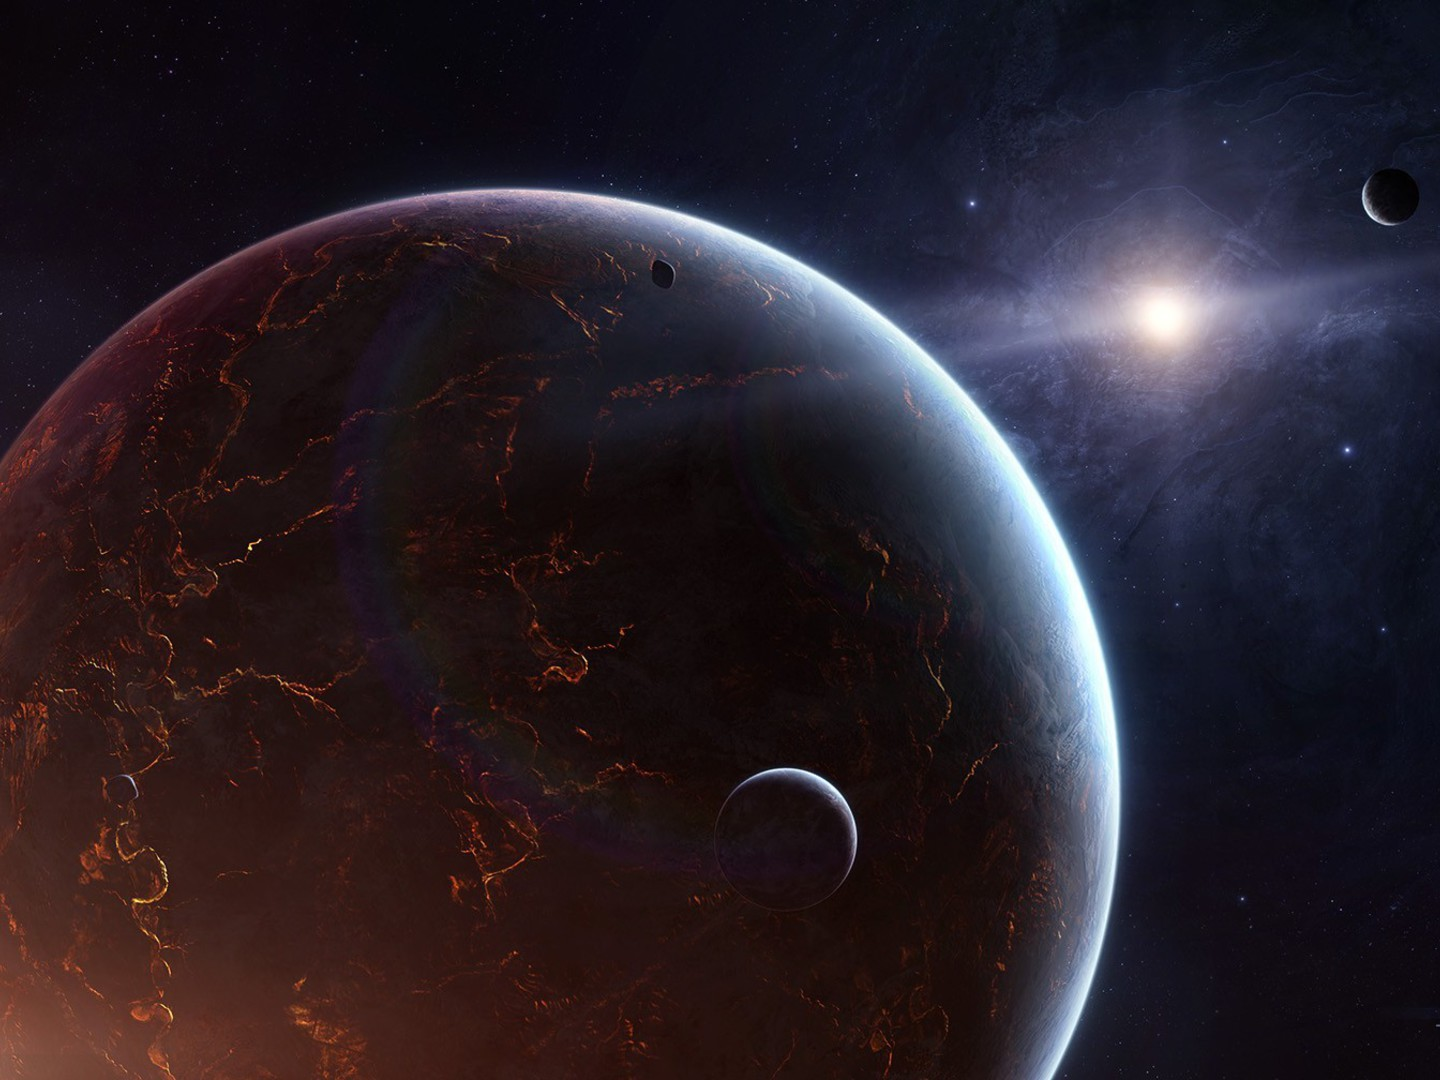 outer space planets and stars - photo #25